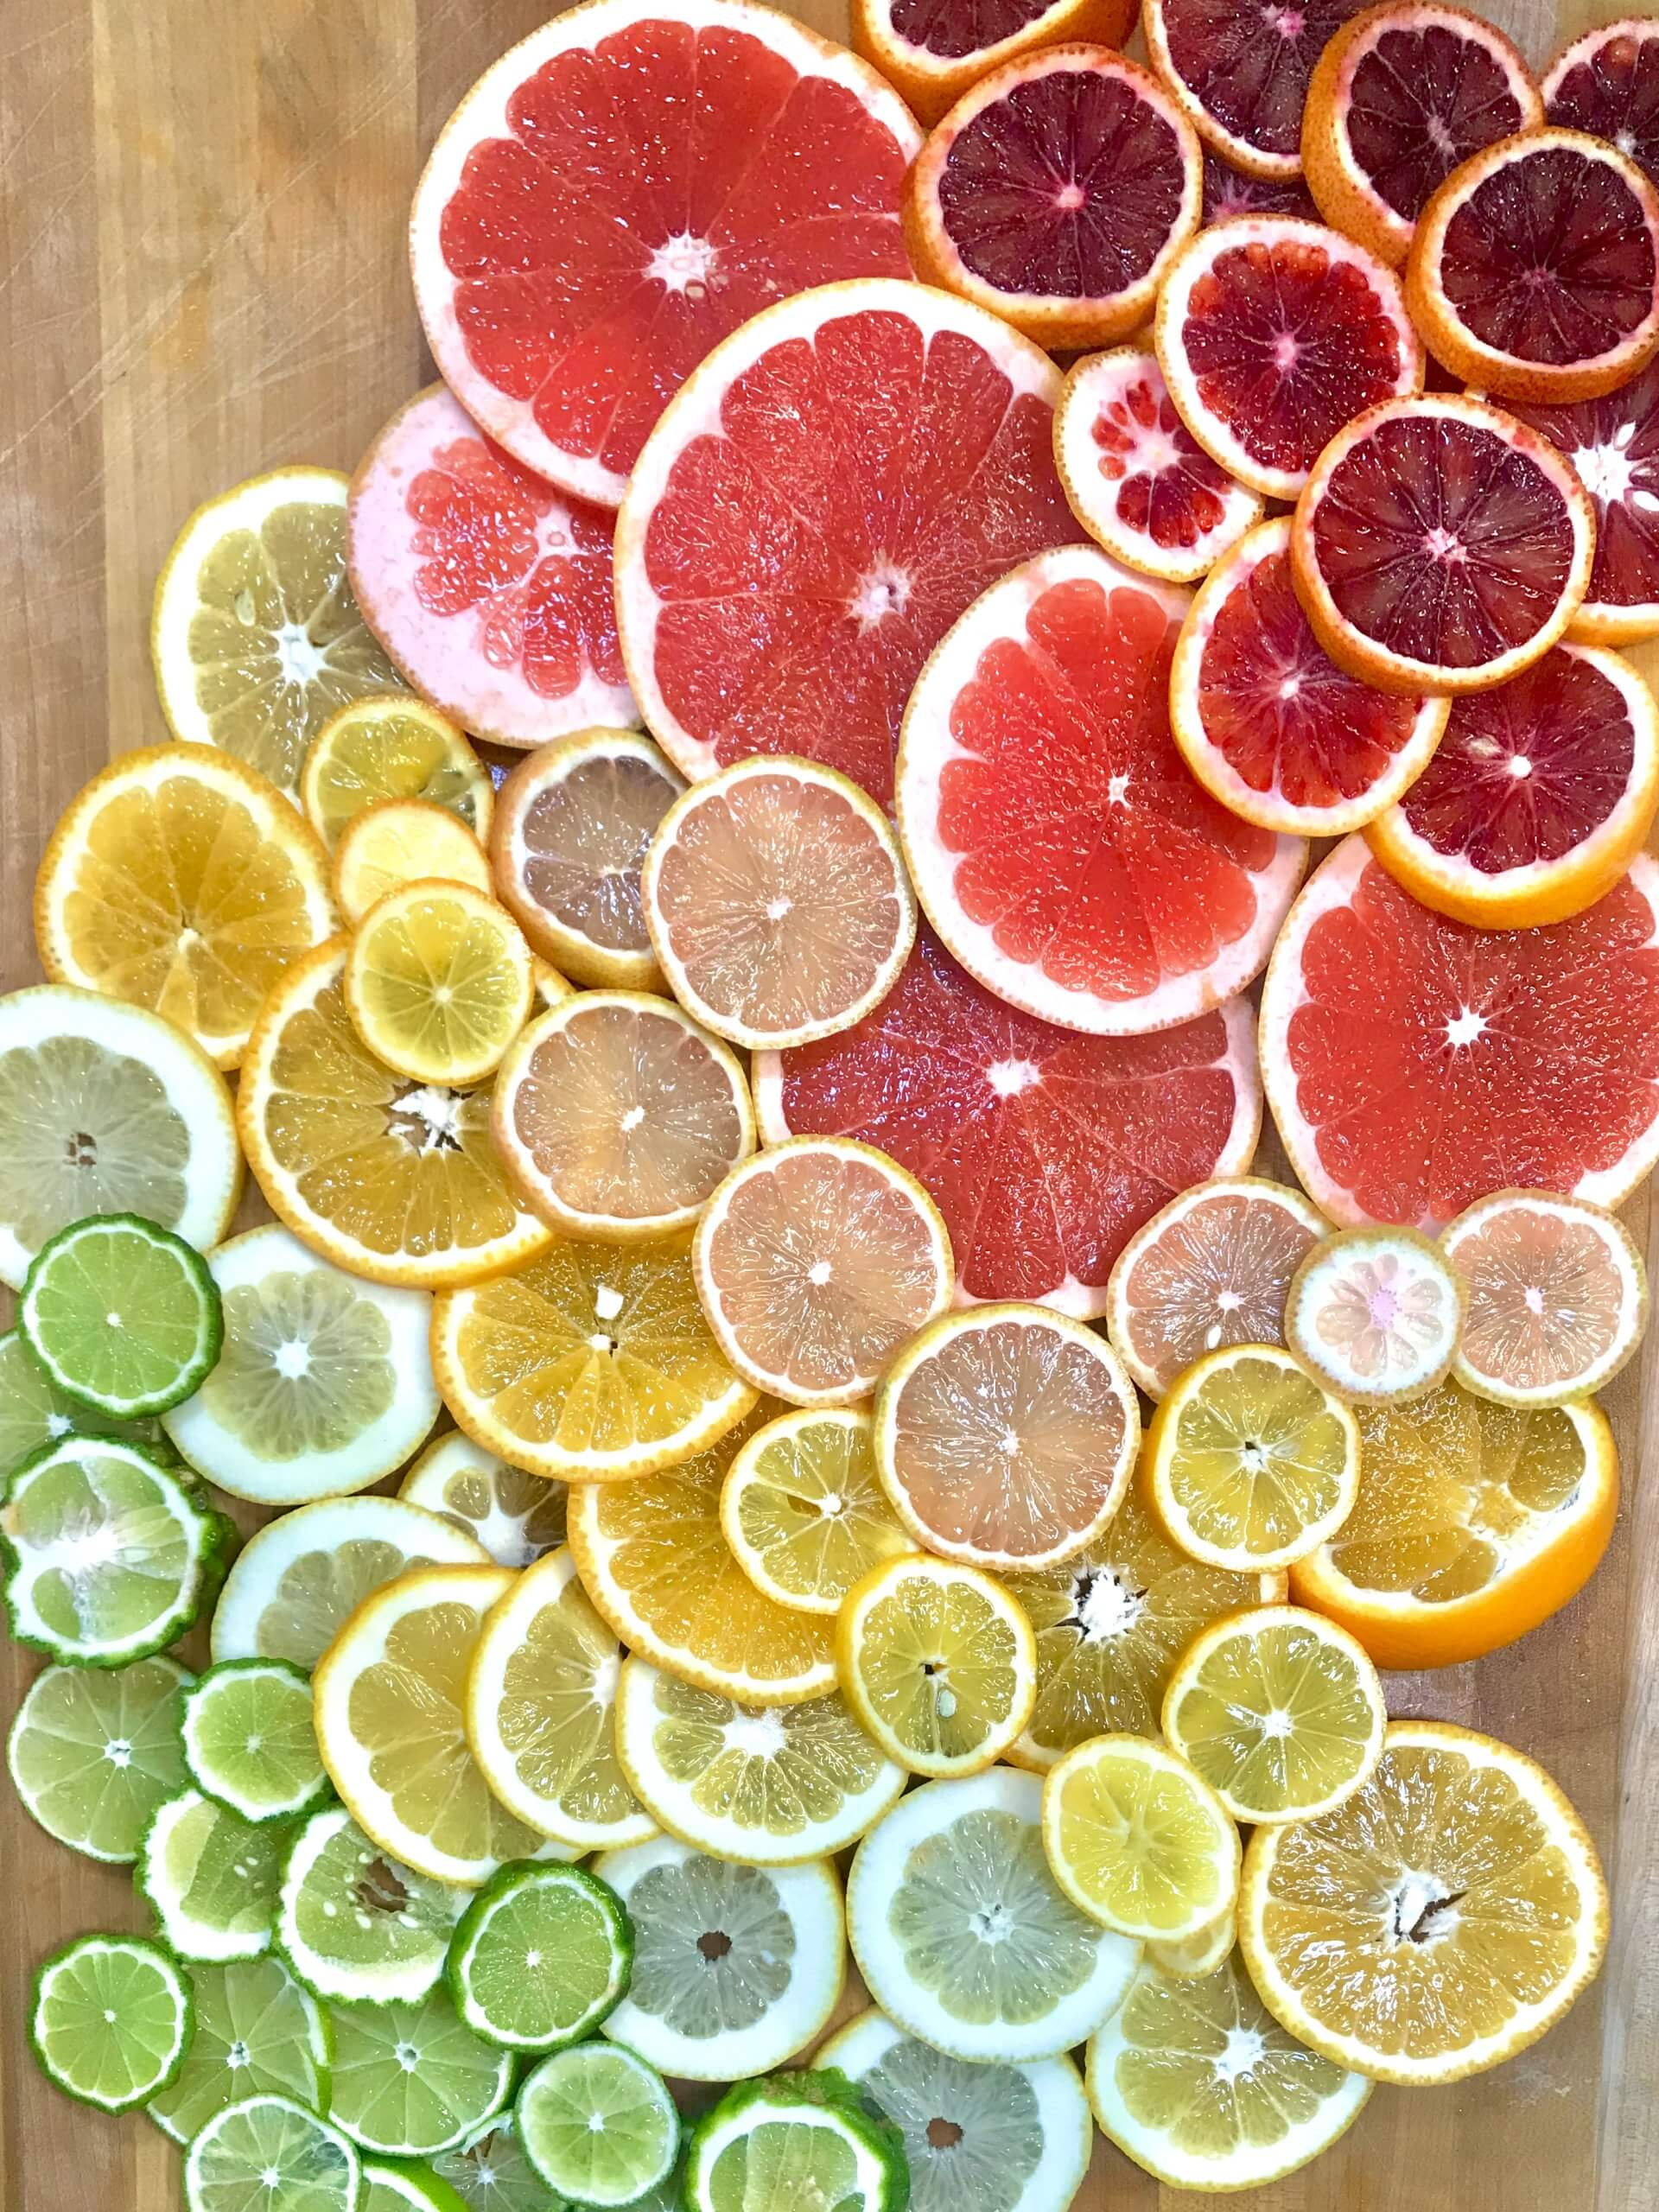 Slices of colorful citrus fruit